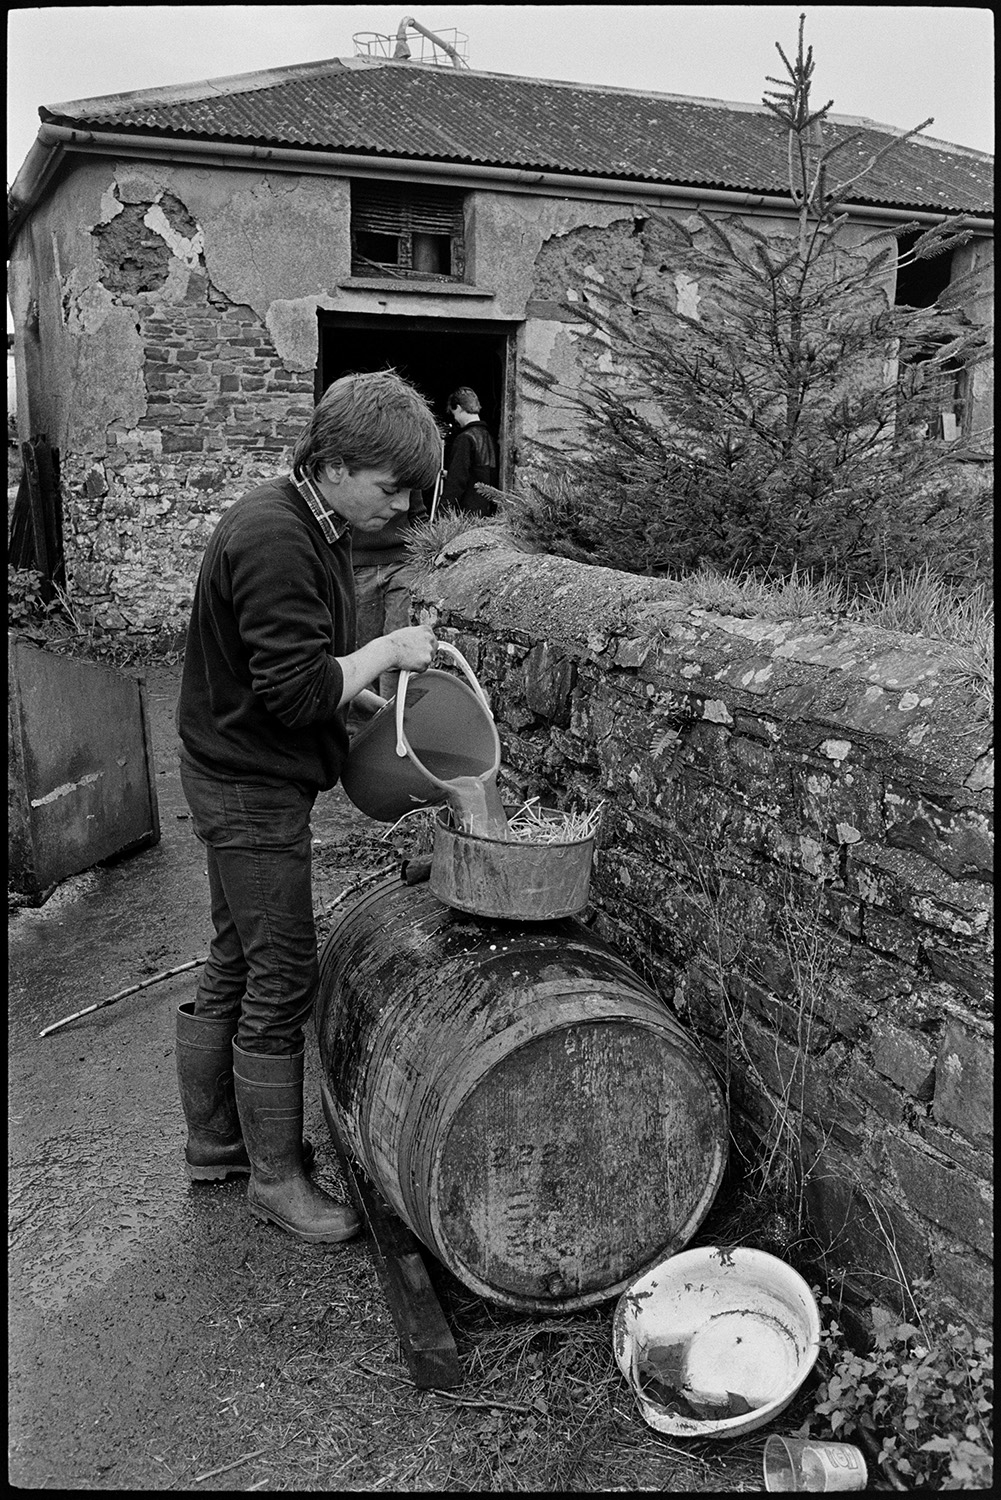 Farmers pressing cider in barn. Baskets of apples poured into crusher.<br /> [A young man pouring cider through a straw strainer into a barrel in the farmyard at Spittle, Chulmleigh. A stone barn with a corrugated roof is in the background.]